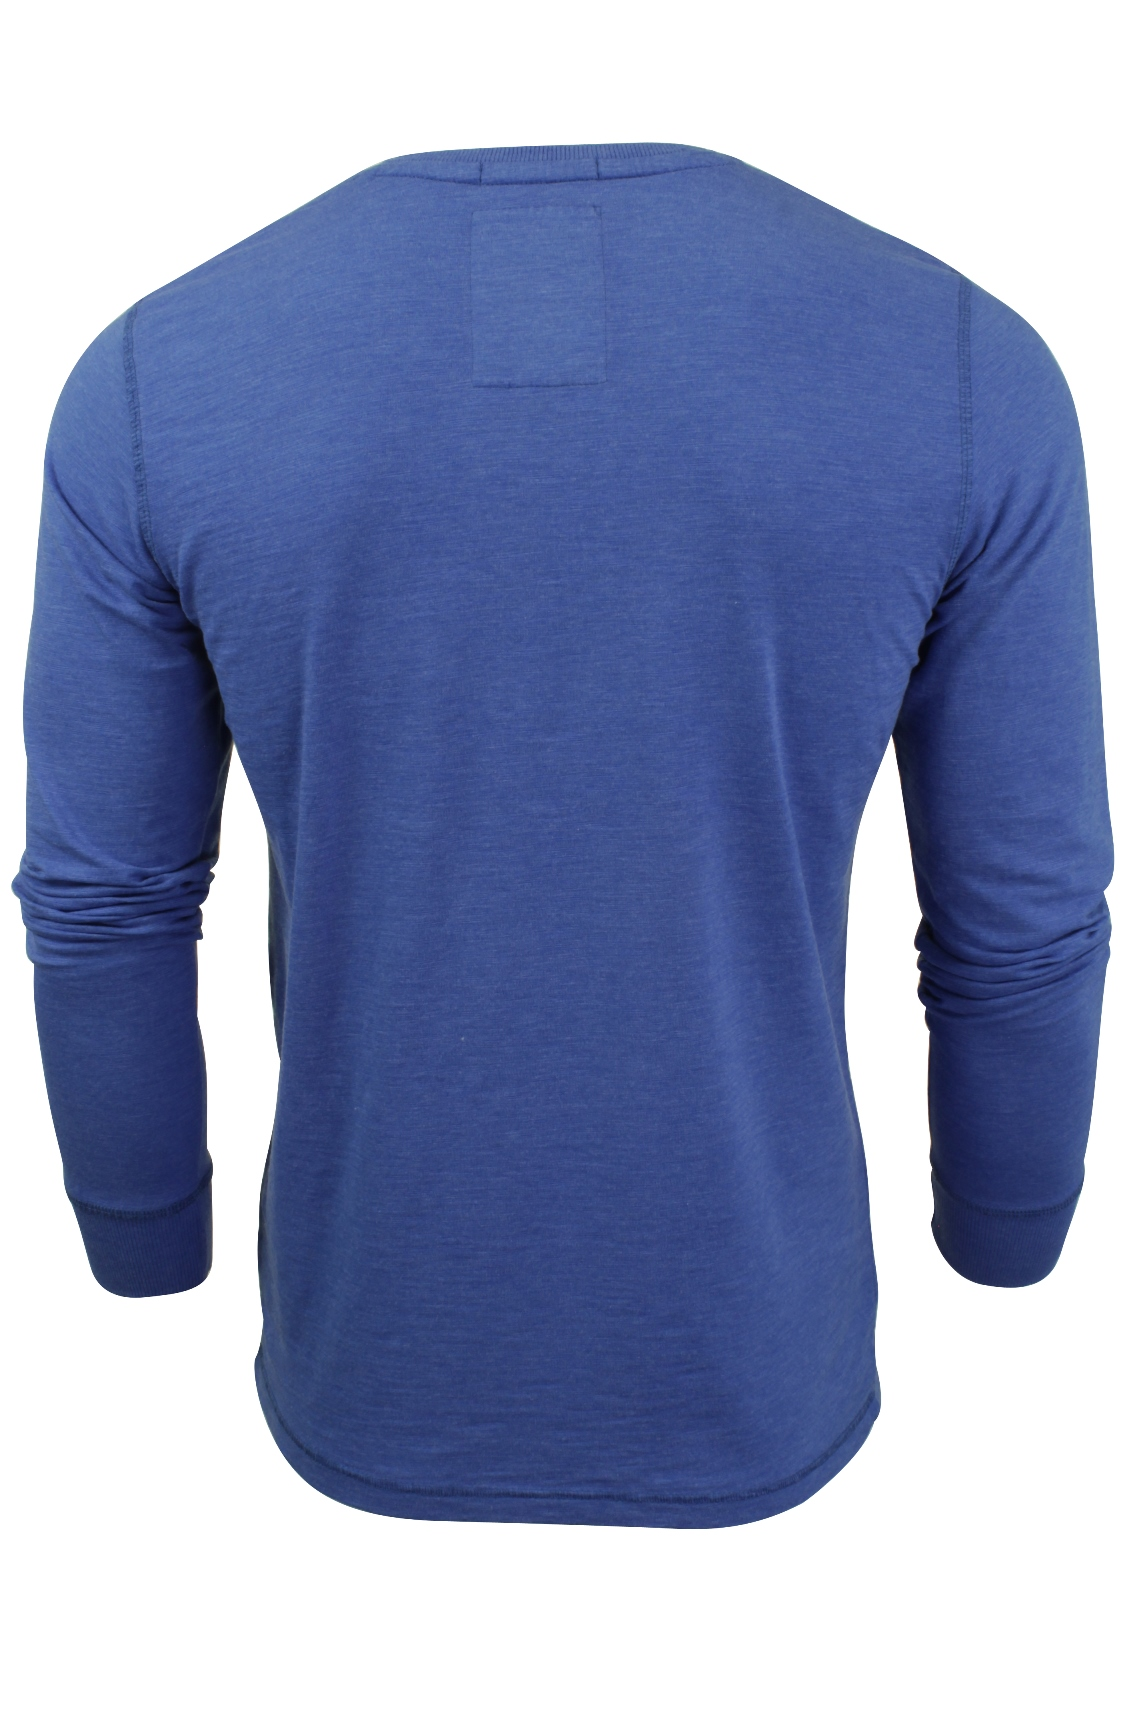 Mens-Grandad-T-Shirt-by-Tokyo-Laundry-039-Lawton-Cove-039-Long-Sleeved thumbnail 5